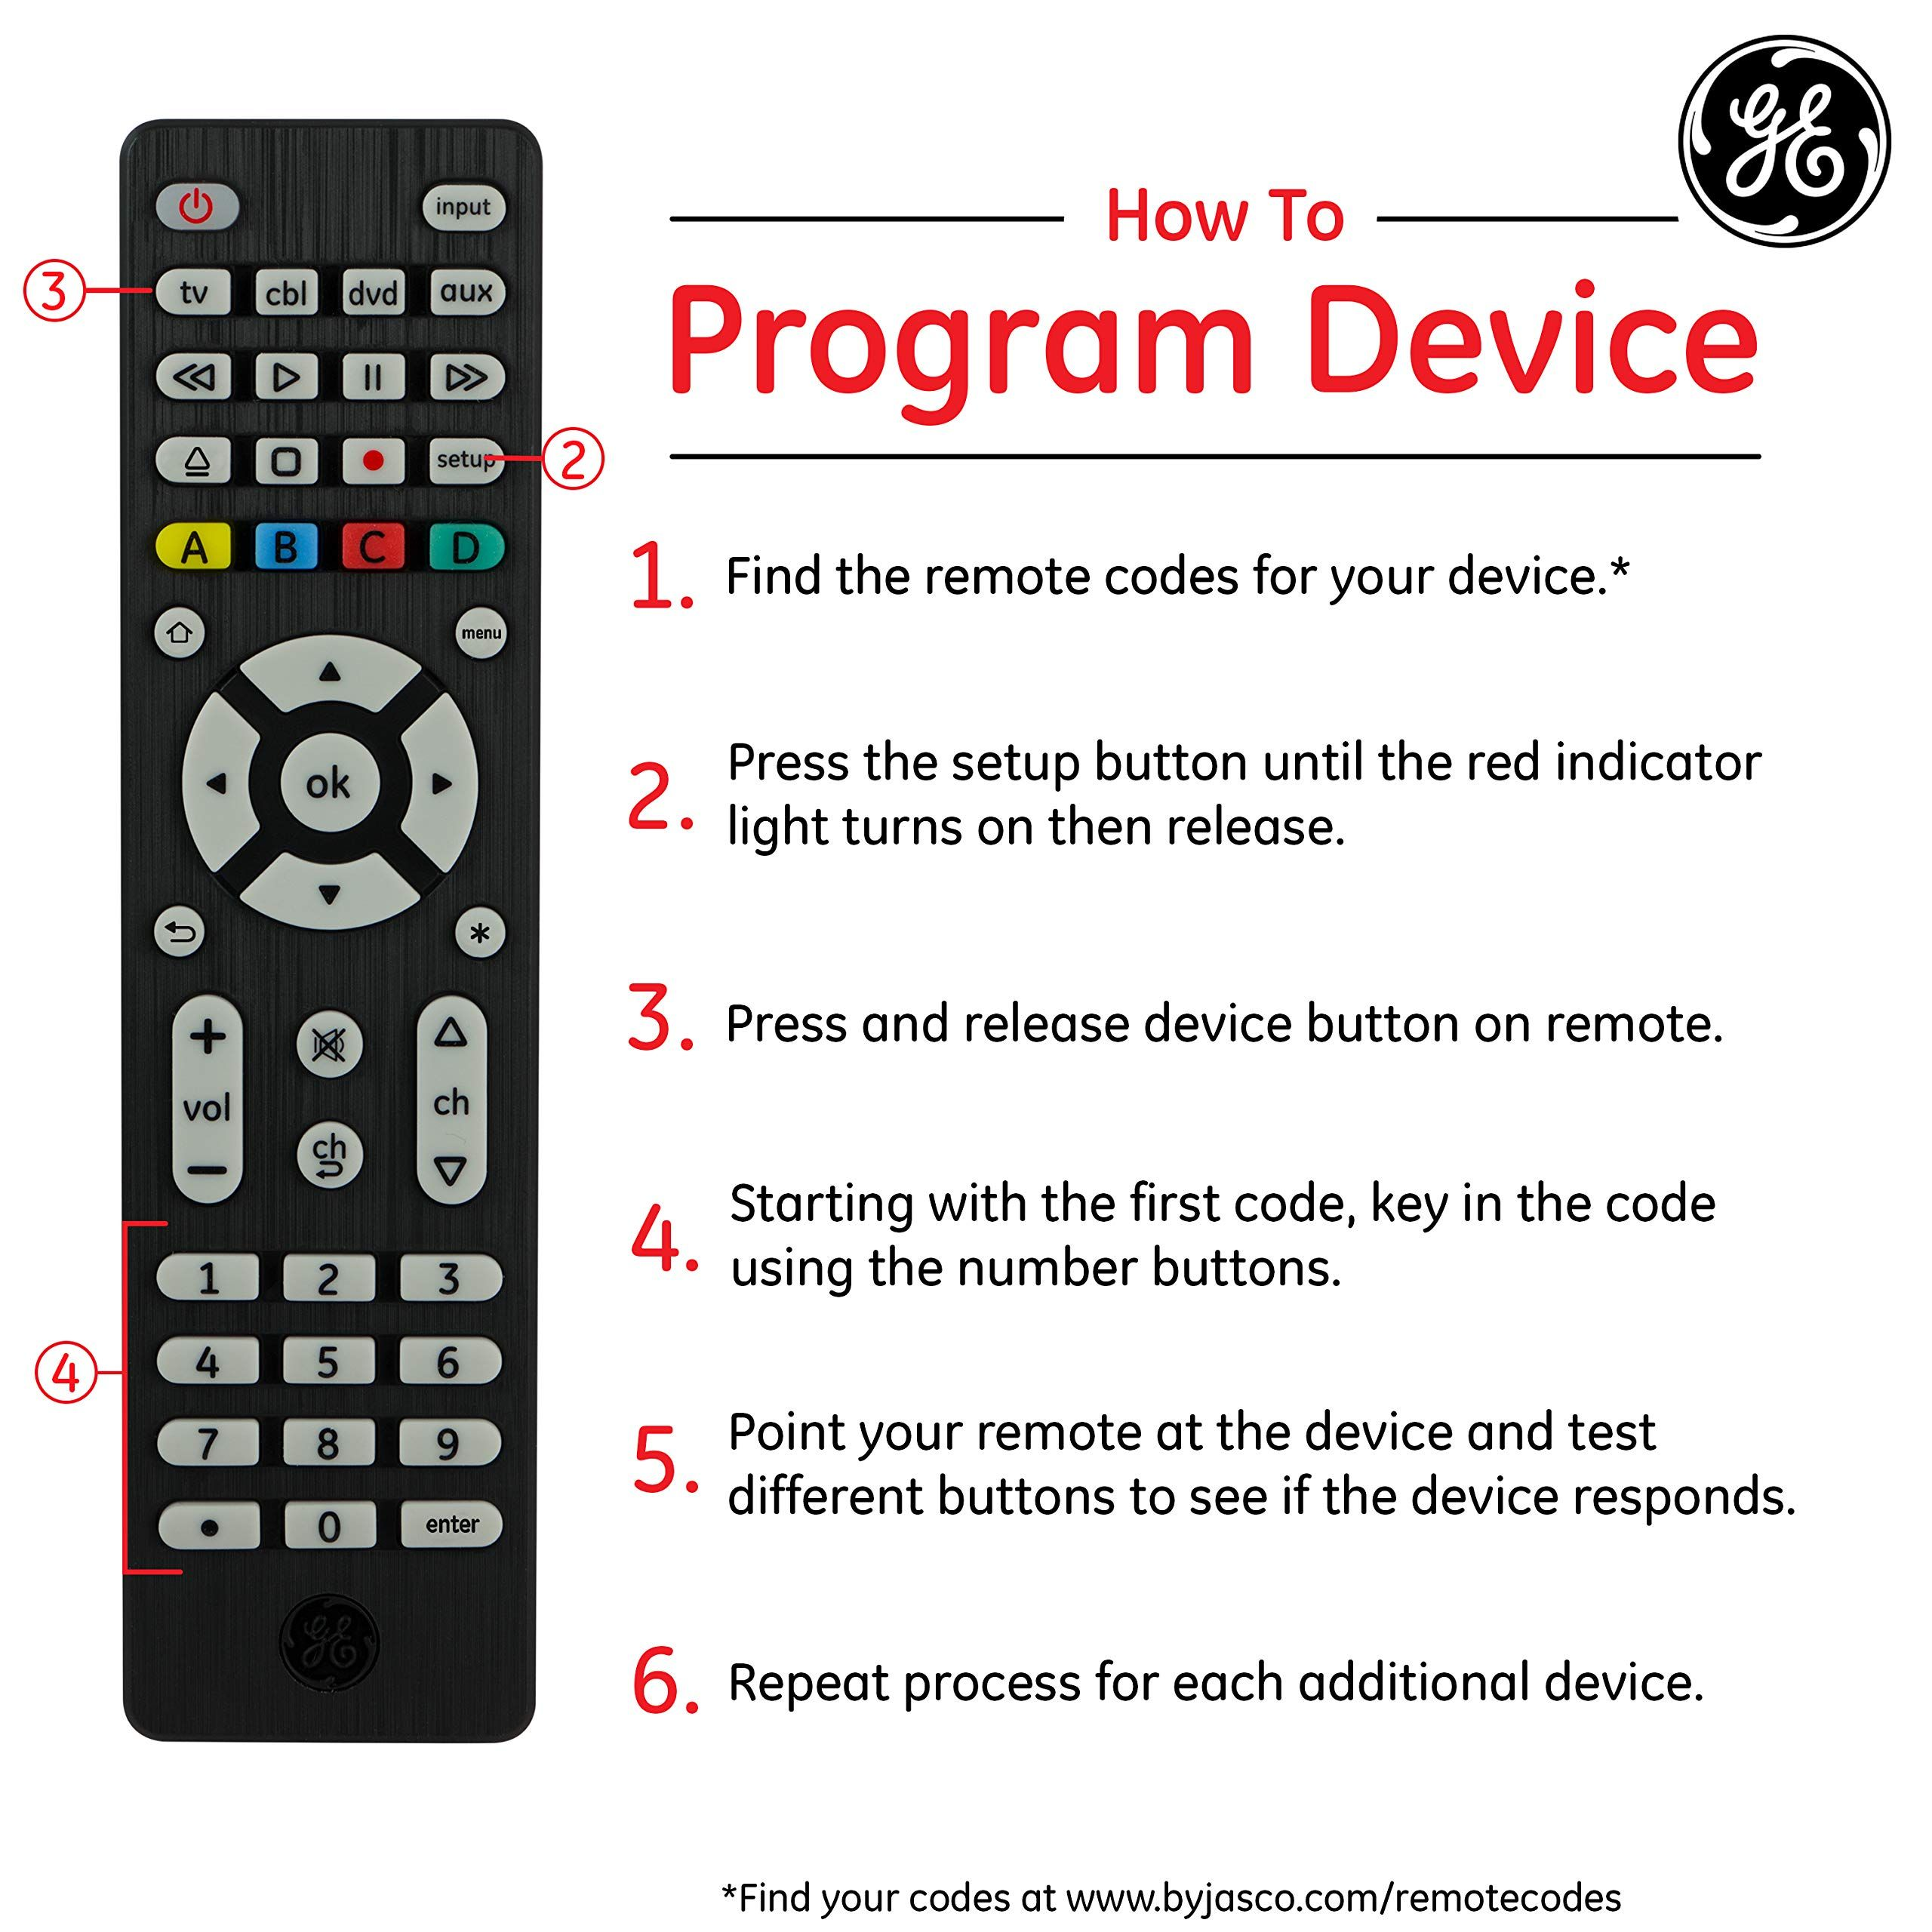 GE 4 Device Universal Remote, Works with Smart TVs, LG